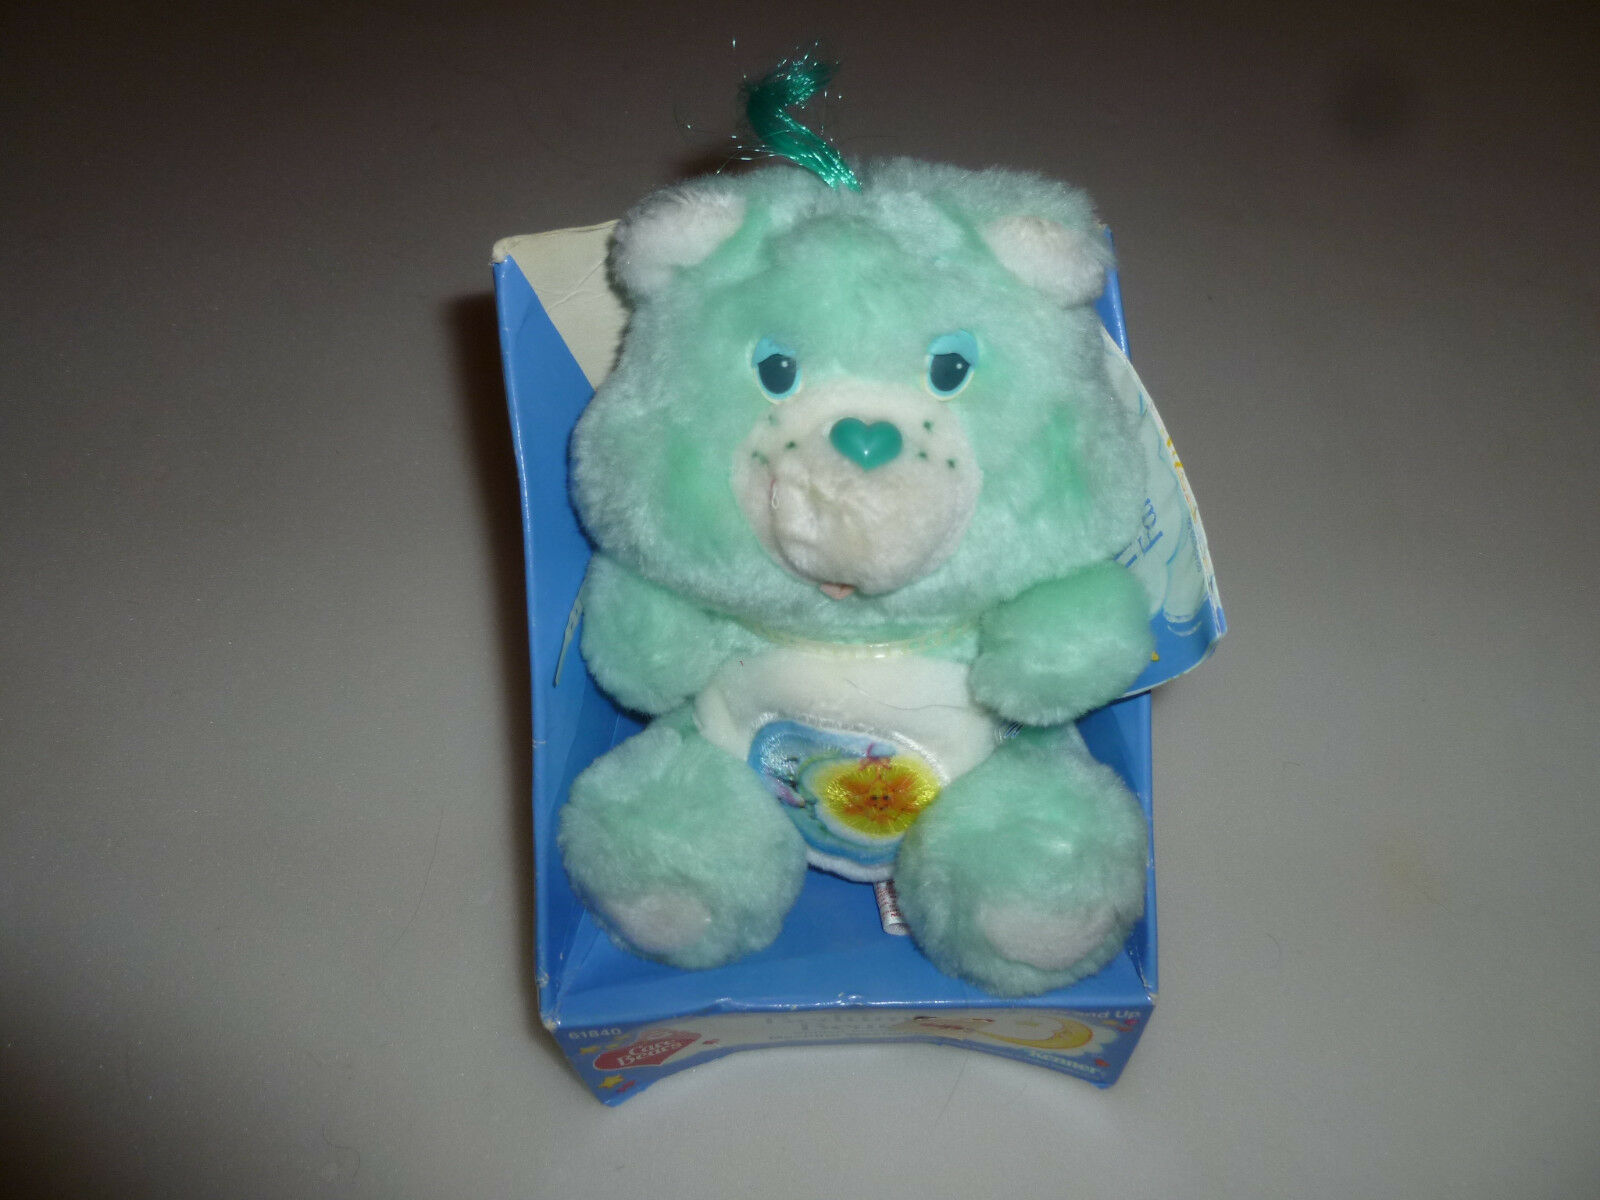 NEW IN BOX BEDTIME BEAR  CARBEAR 6  PLUSH KENNER 1985 VINTAGE RARE 61840 NWT NIB